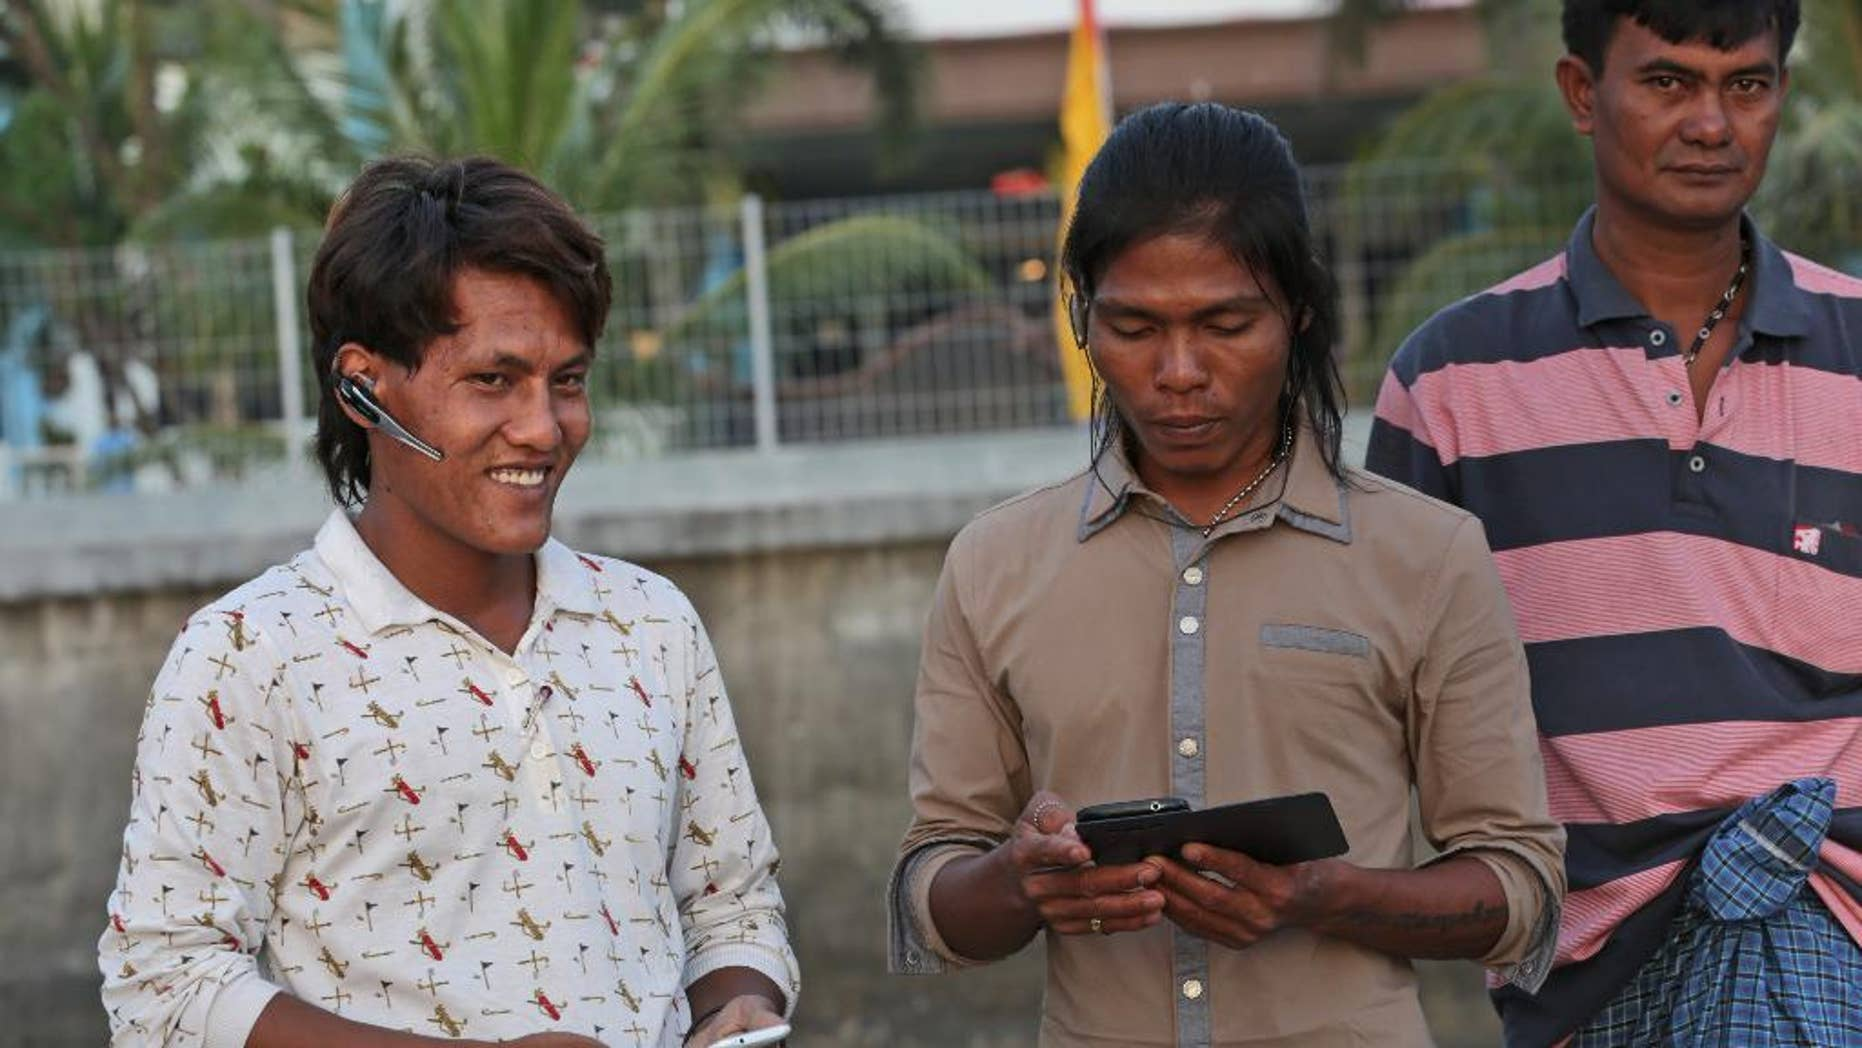 In this Sept. 9, 2015 photo, Burmese fisherman Myo Aung, left, chats with his friends outside their temporary shelter in Ambon, Maluku province, Indonesia. Myo Aung took a fishing job that he thought would keep him close to home in southern Myanmar, but he ended up thousands of miles away with no chance of return for five years. The 25-year-old is among more than 2,000 fishermen rescued this year from forced labor under brutal conditions, mainly in remote Indonesian islands, following reporting by The Associated Press and subsequent investigation by Indonesian authorities. Last week he was on Ambon island, awaiting his return home. (AP Photo/Achmad Ibrahim)